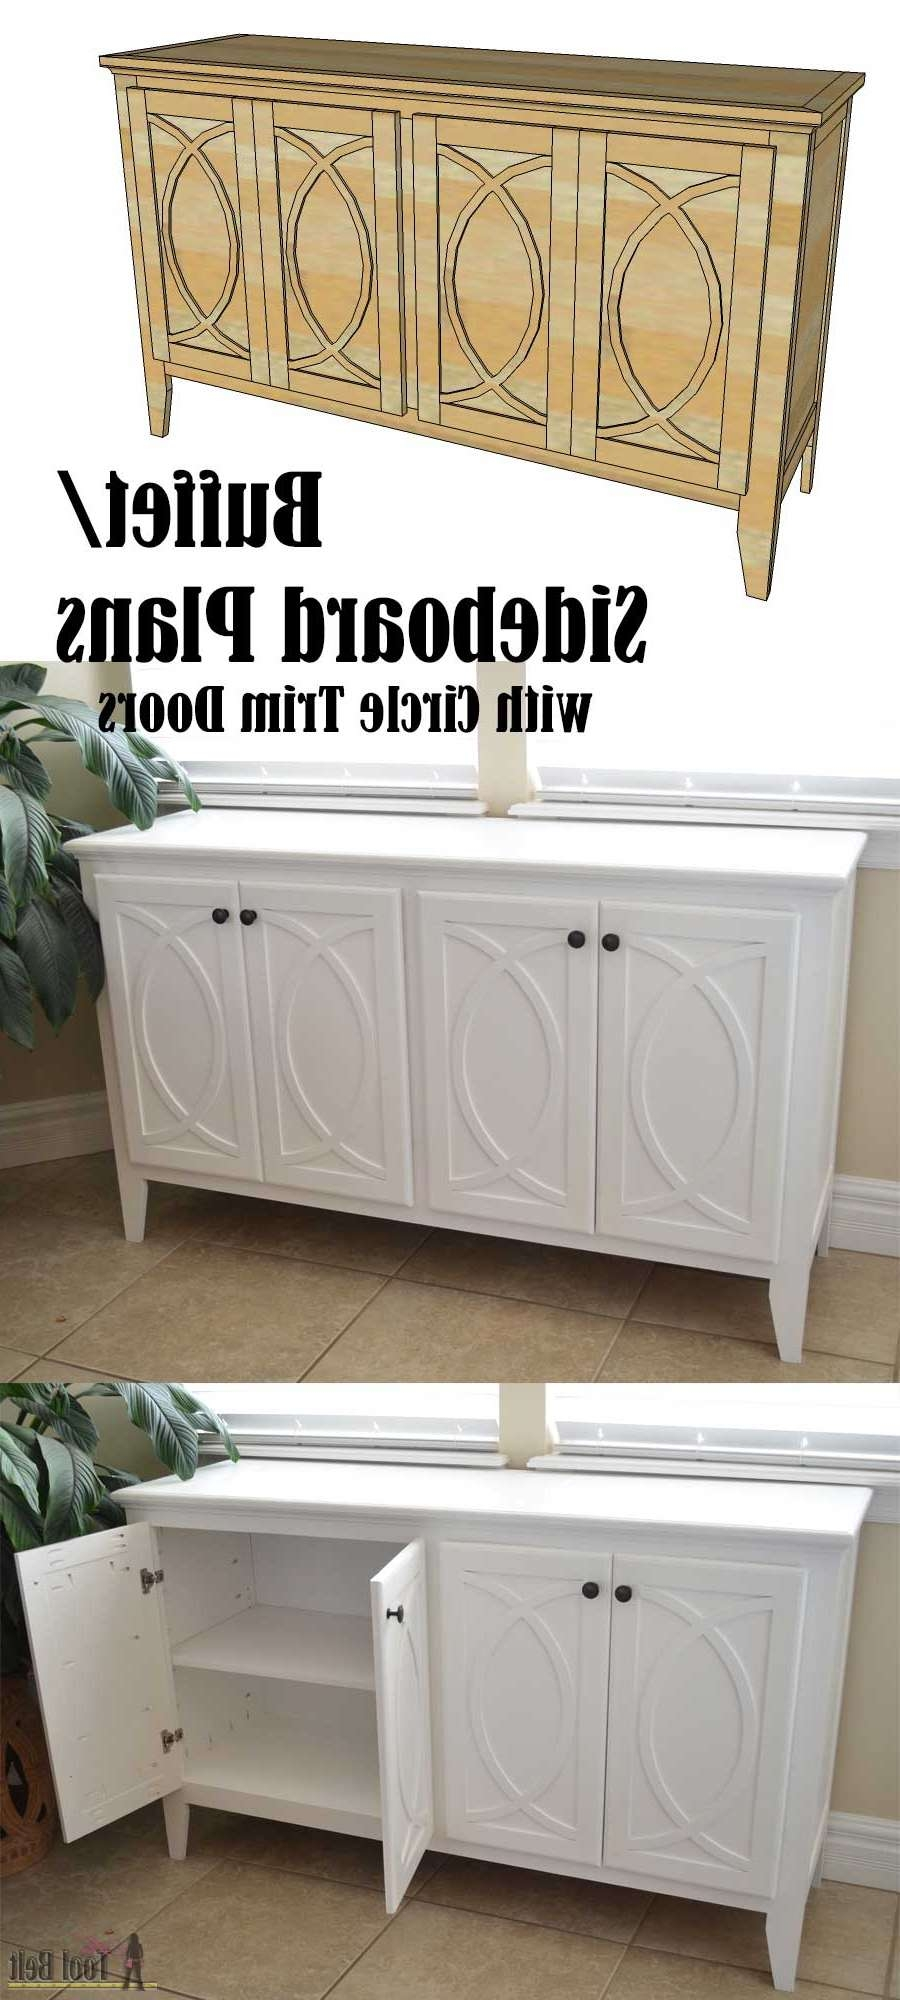 Diy Buffet Sideboard With Circle Trim Doors – Her Tool Belt Within Diy Sideboards (View 14 of 20)